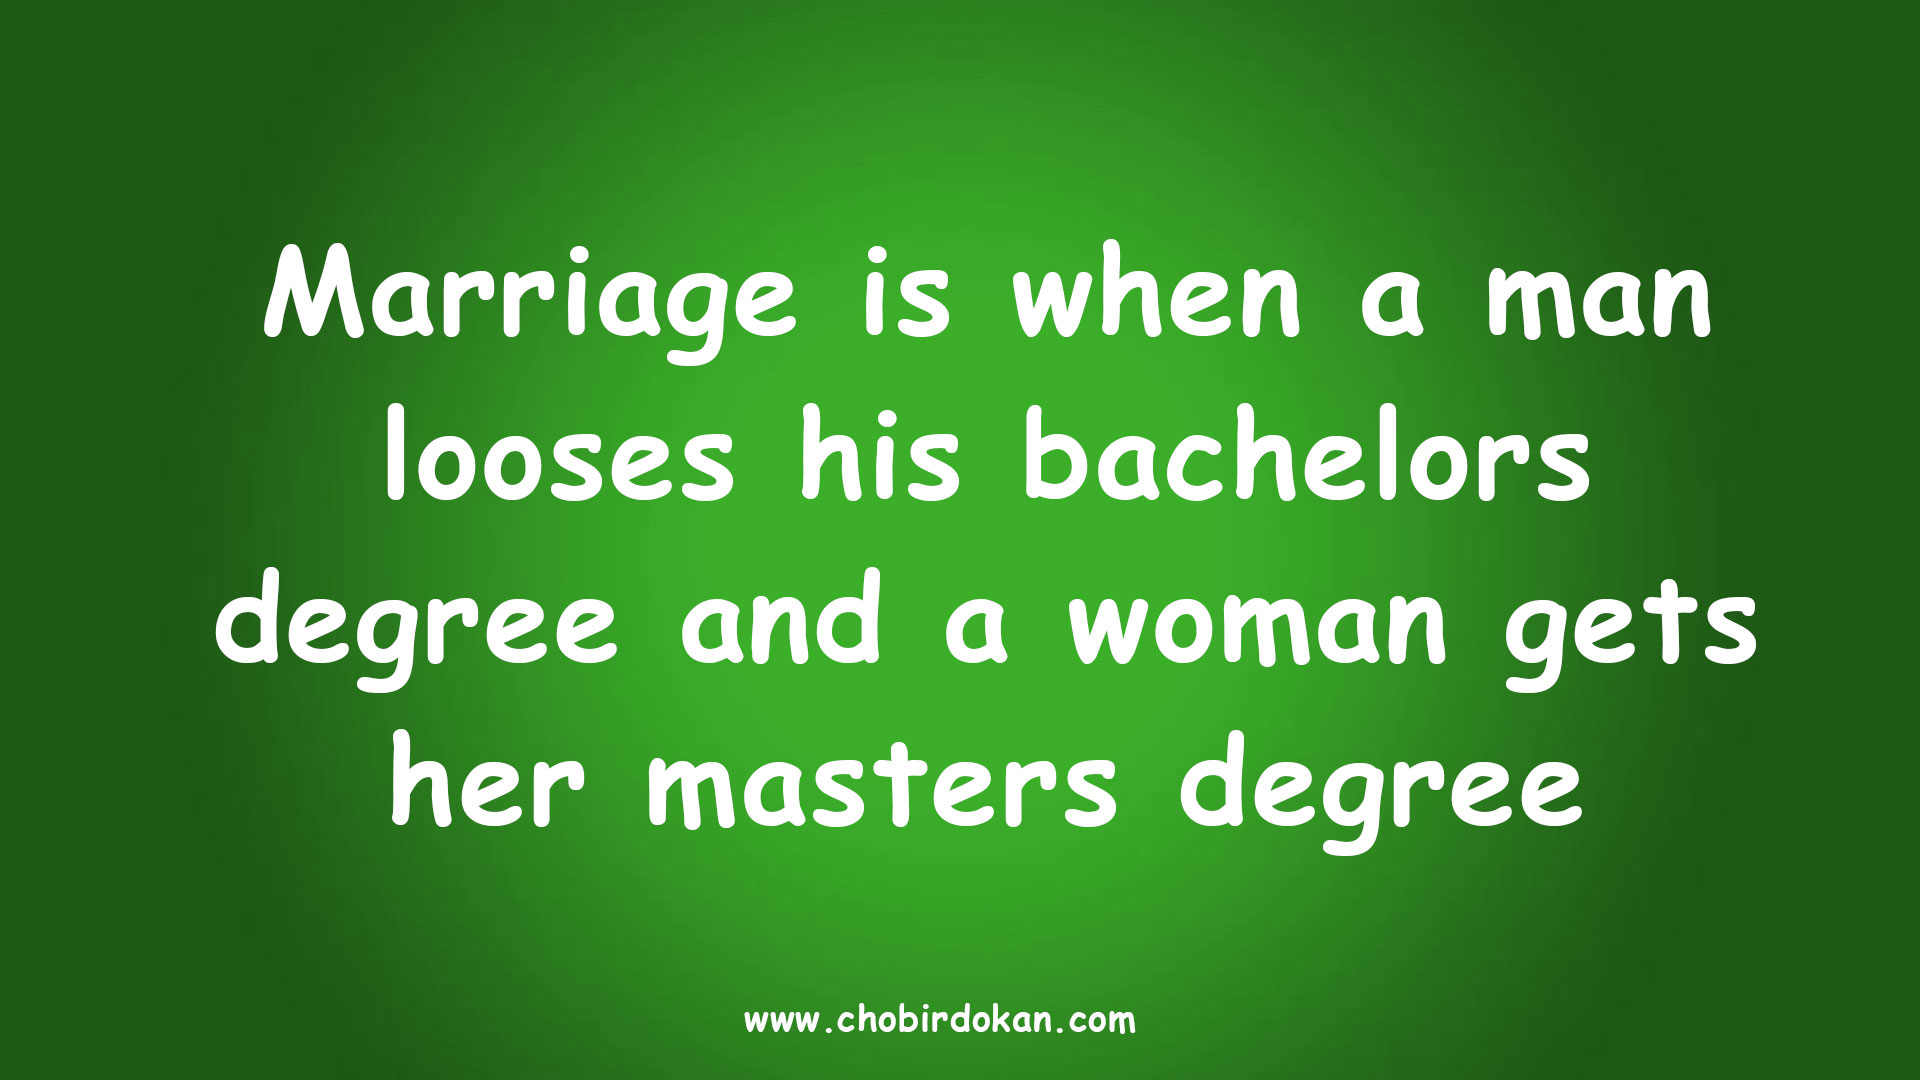 Funny Marriage Quotes Images Funny Wedding Sayings